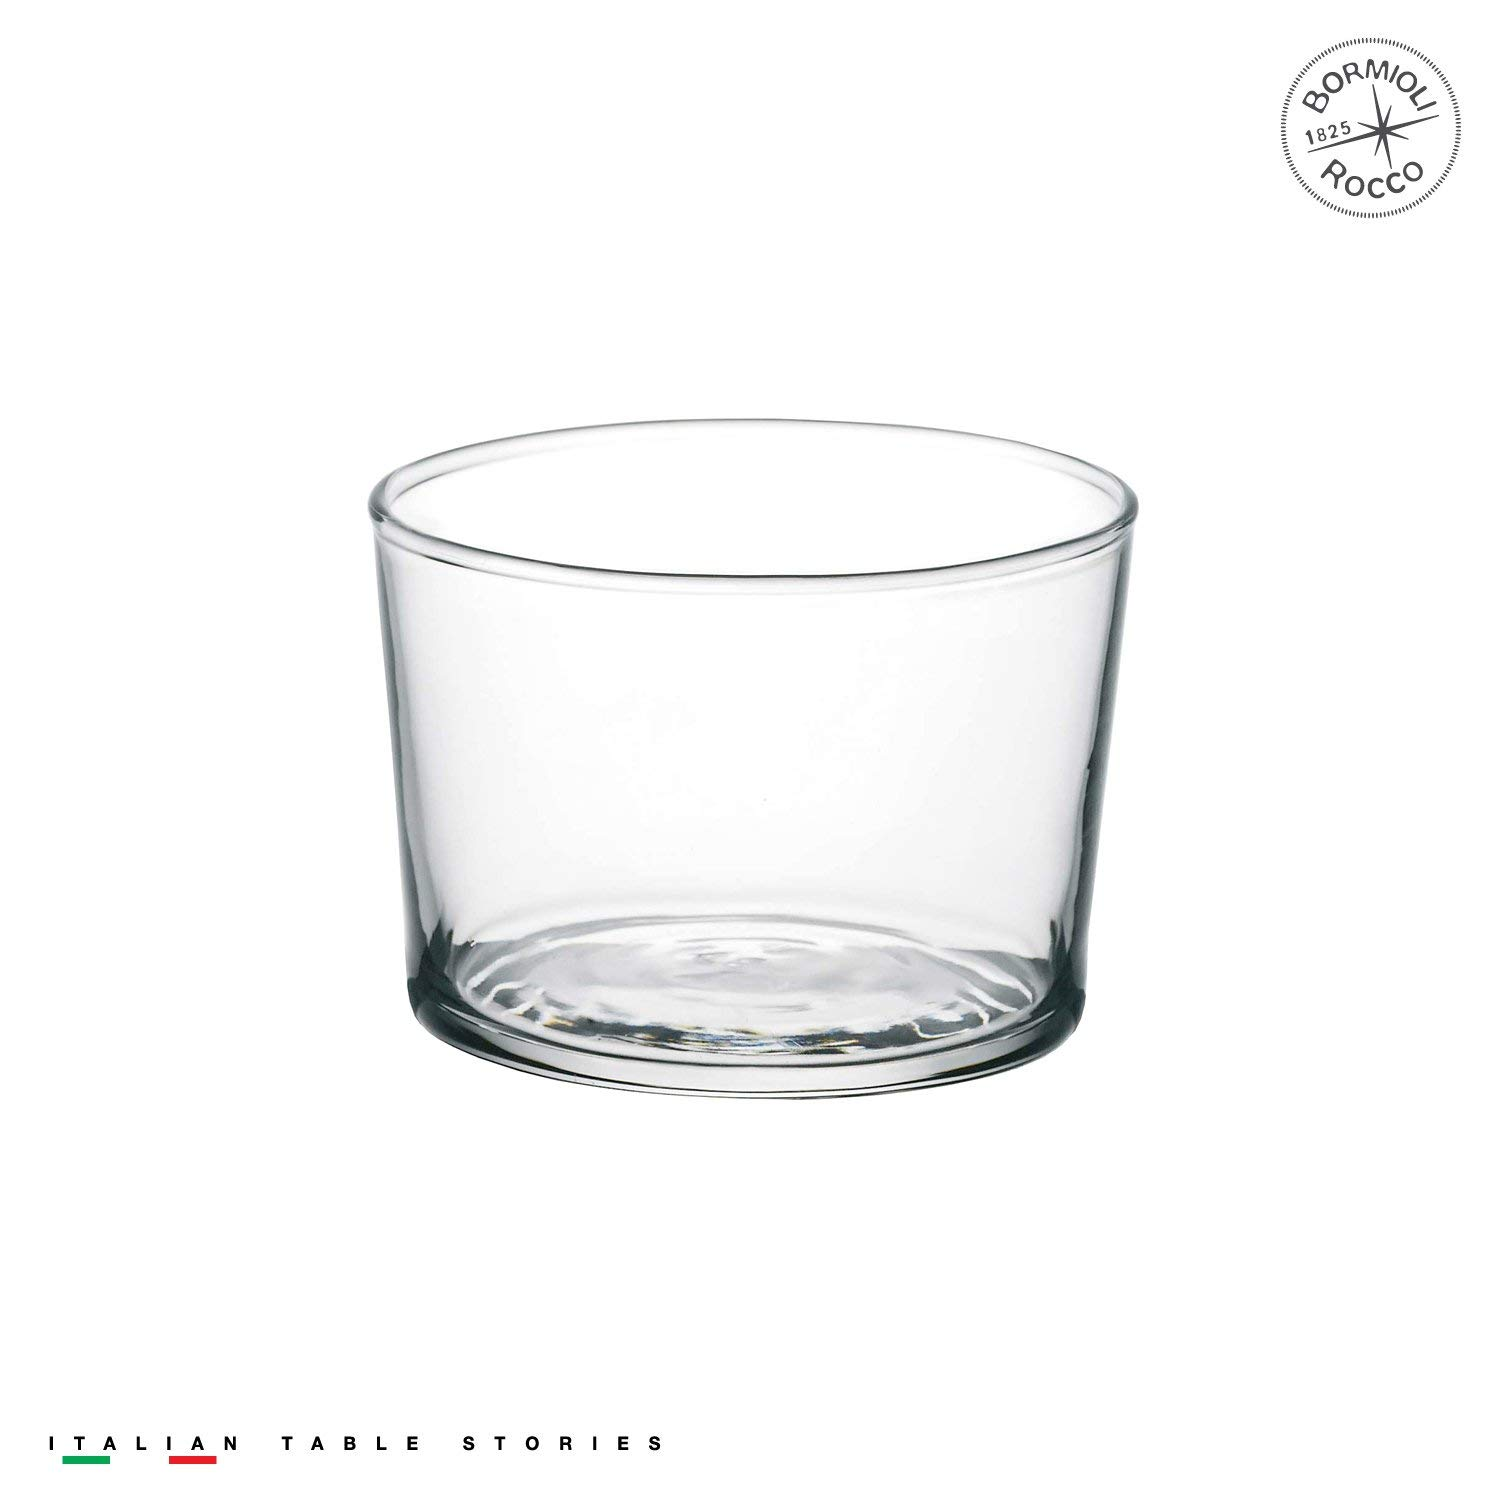 Bormioli Rocco Essential Decor Glassware – Set Of 12 Mini 7.5 Ounce Drinking Glasses For Water, Beverages ,Cocktails & Candle Holders – 7.5oz Clear Tempered Glass Tumblers